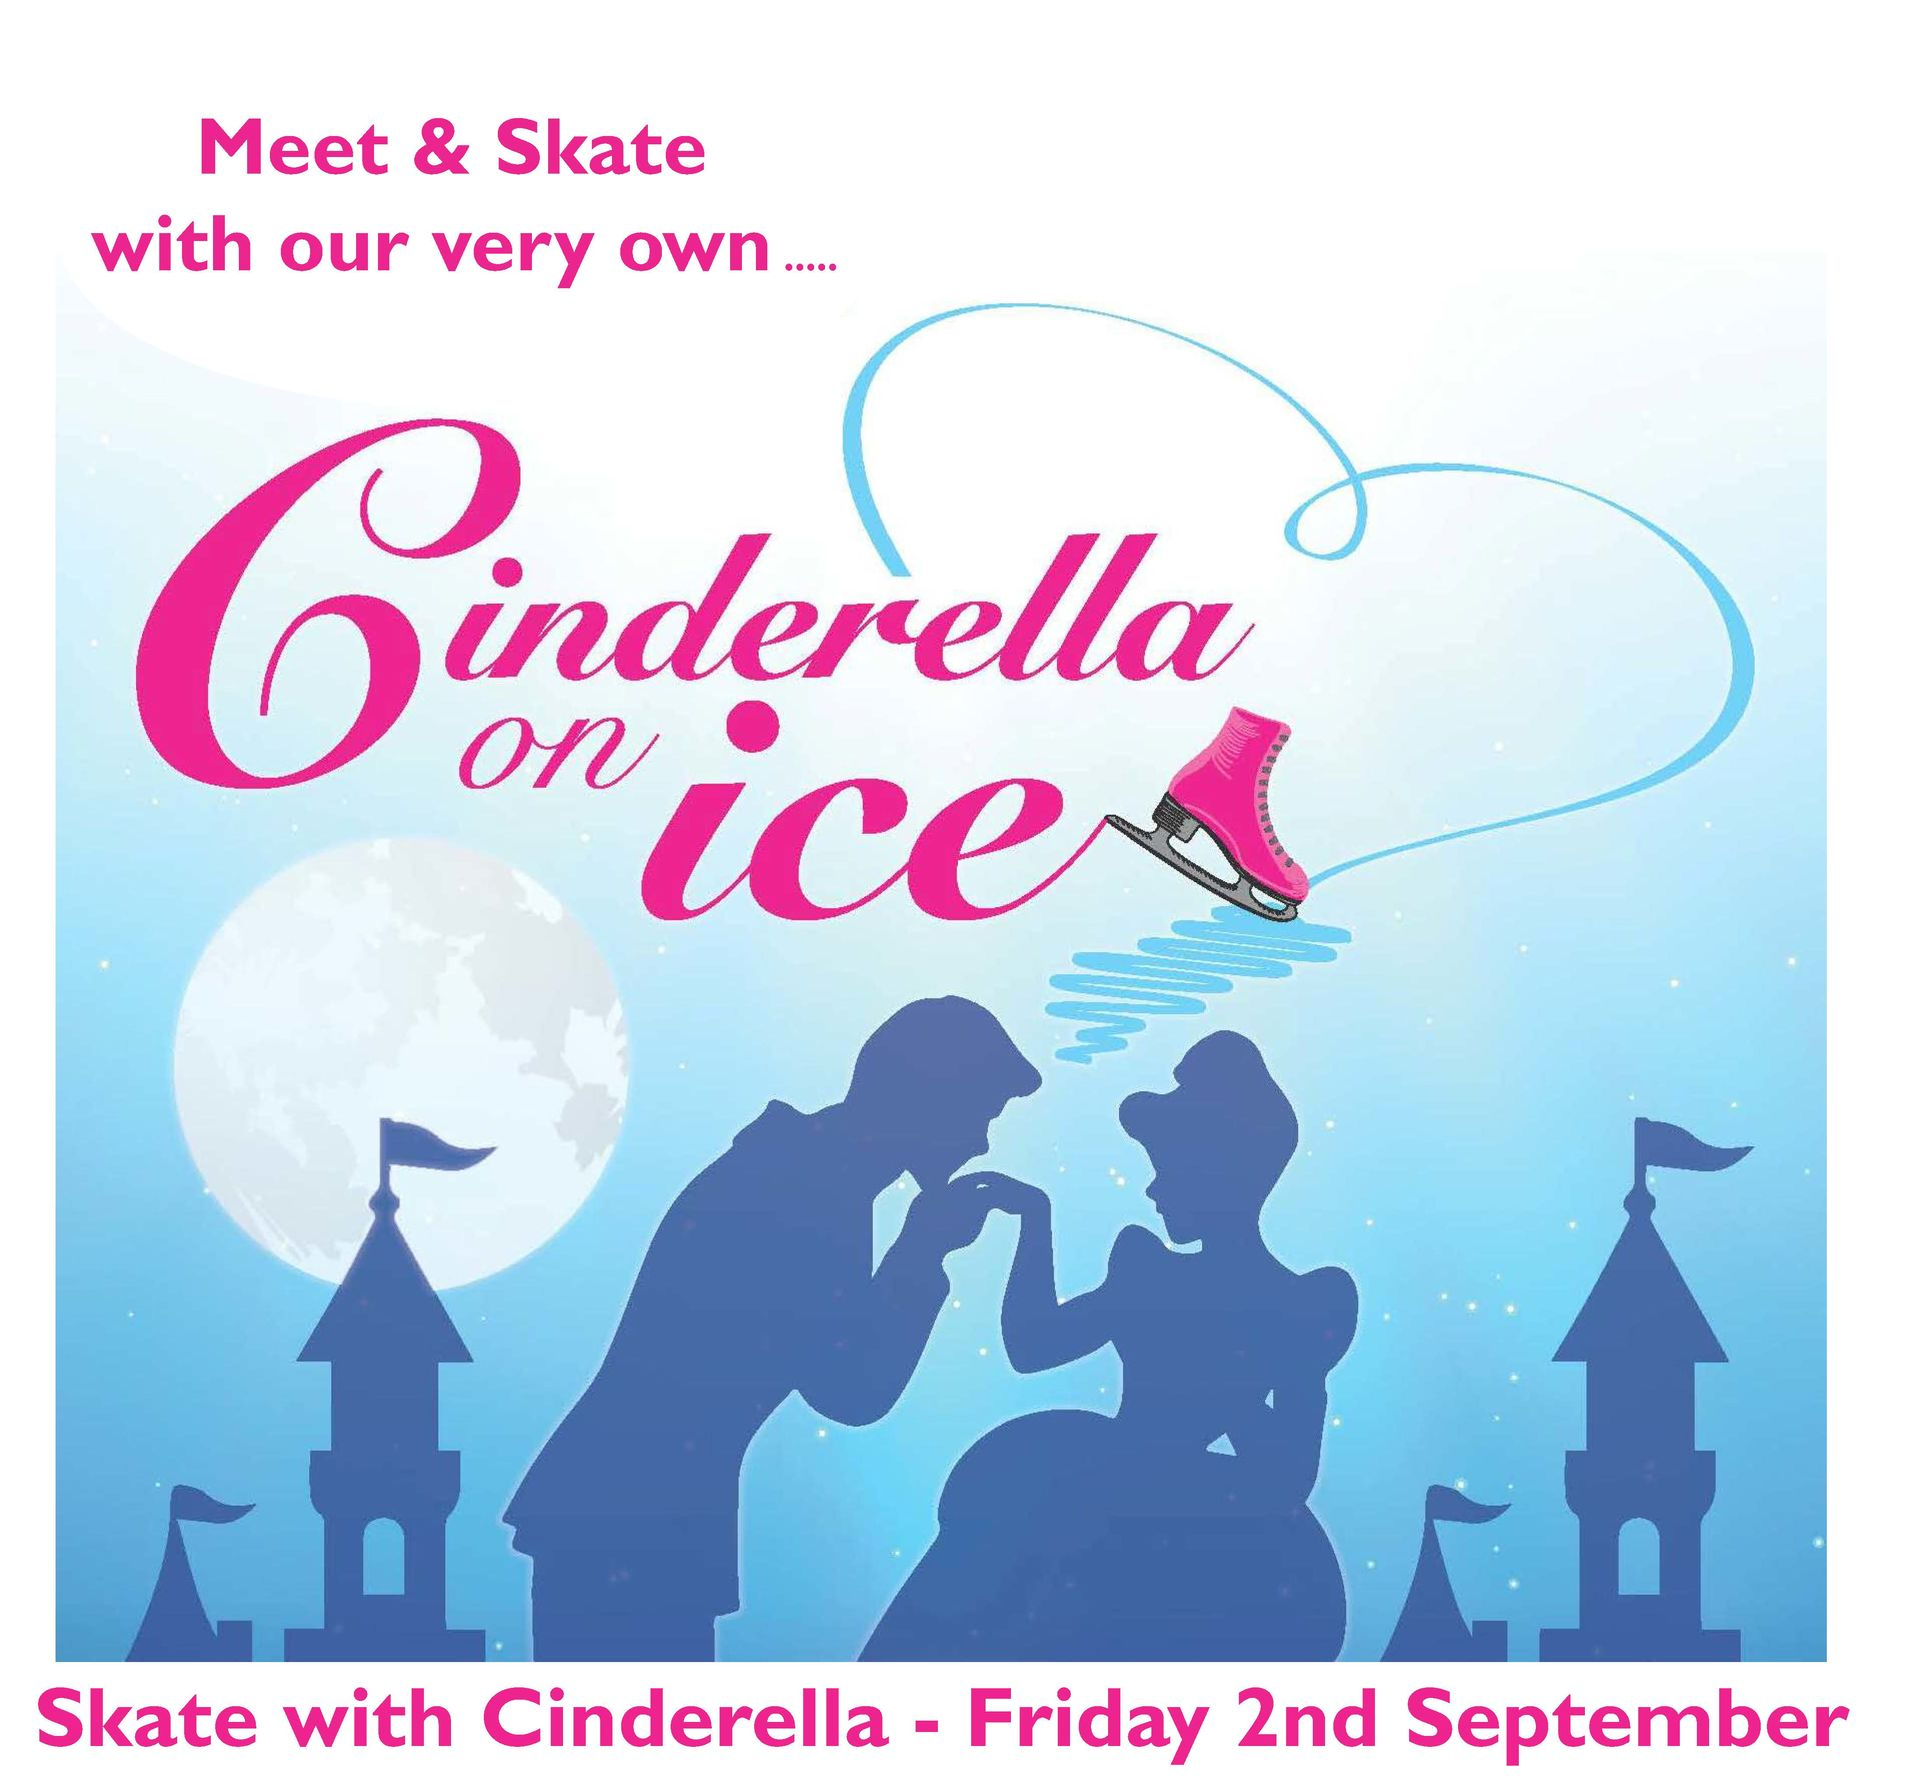 Meet and Skate with Cinderella